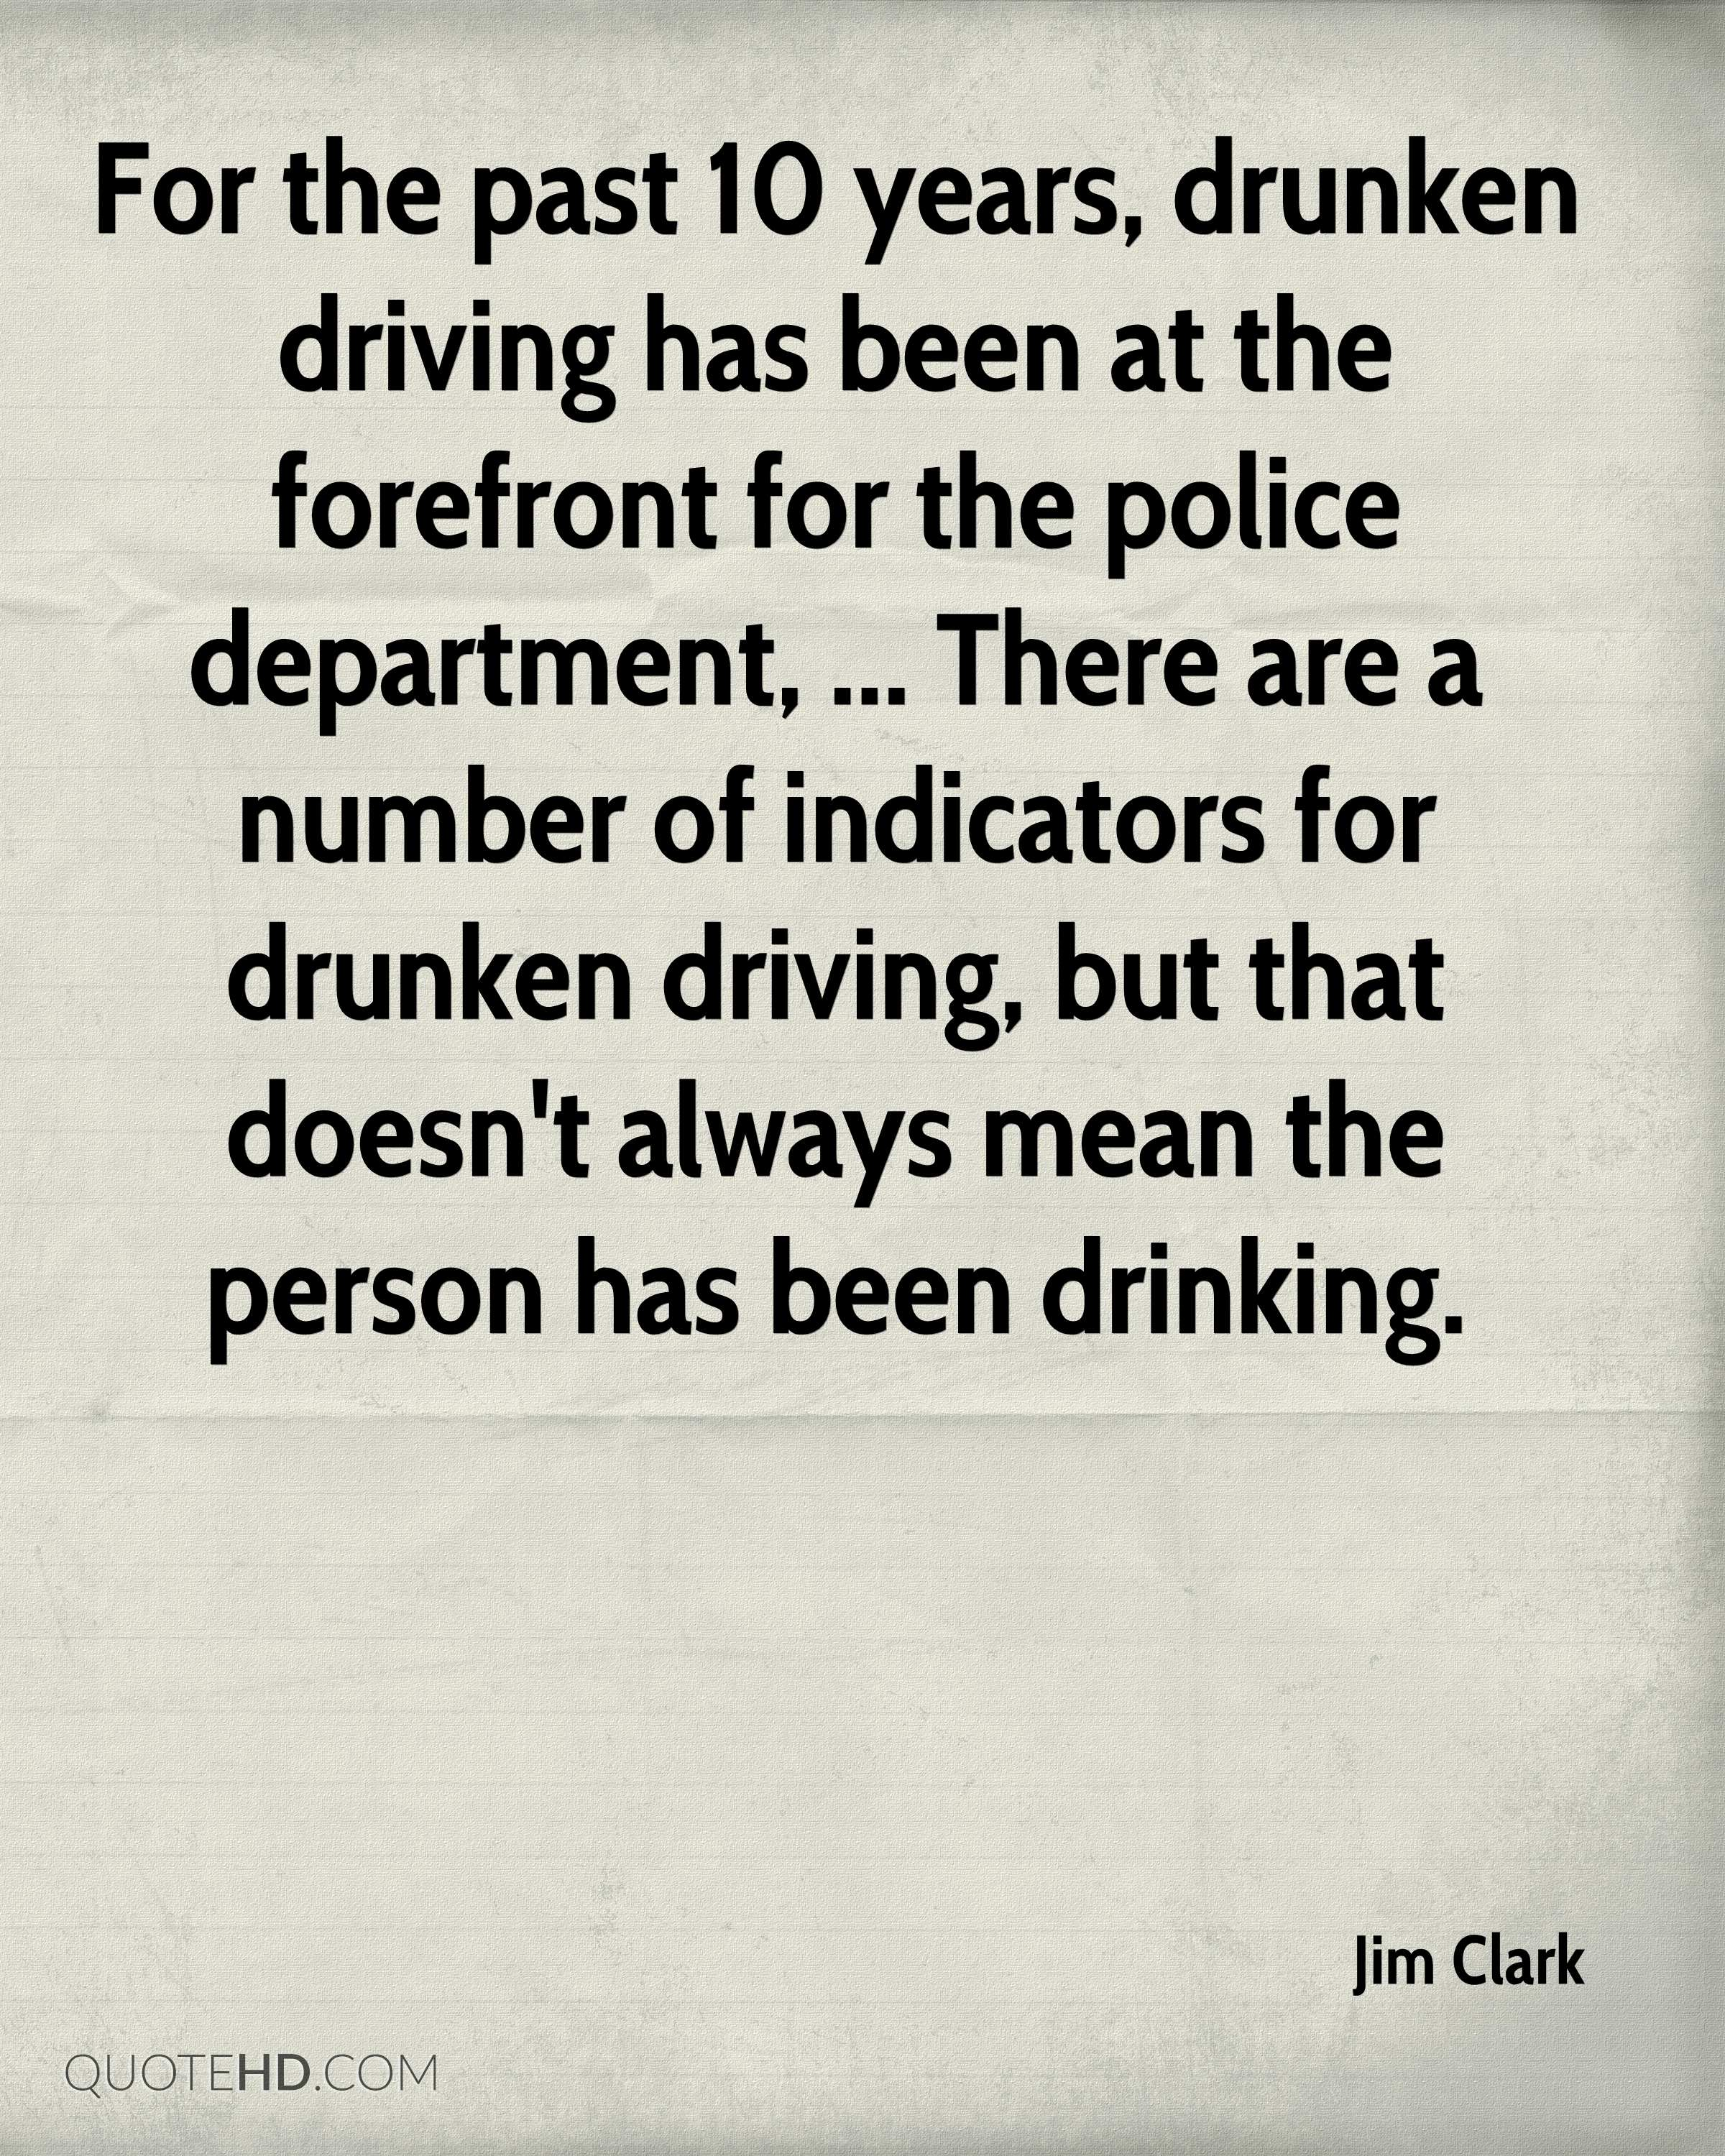 For the past 10 years, drunken driving has been at the forefront for the police department, ... There are a number of indicators for drunken driving, but that doesn't always mean the person has been drinking.